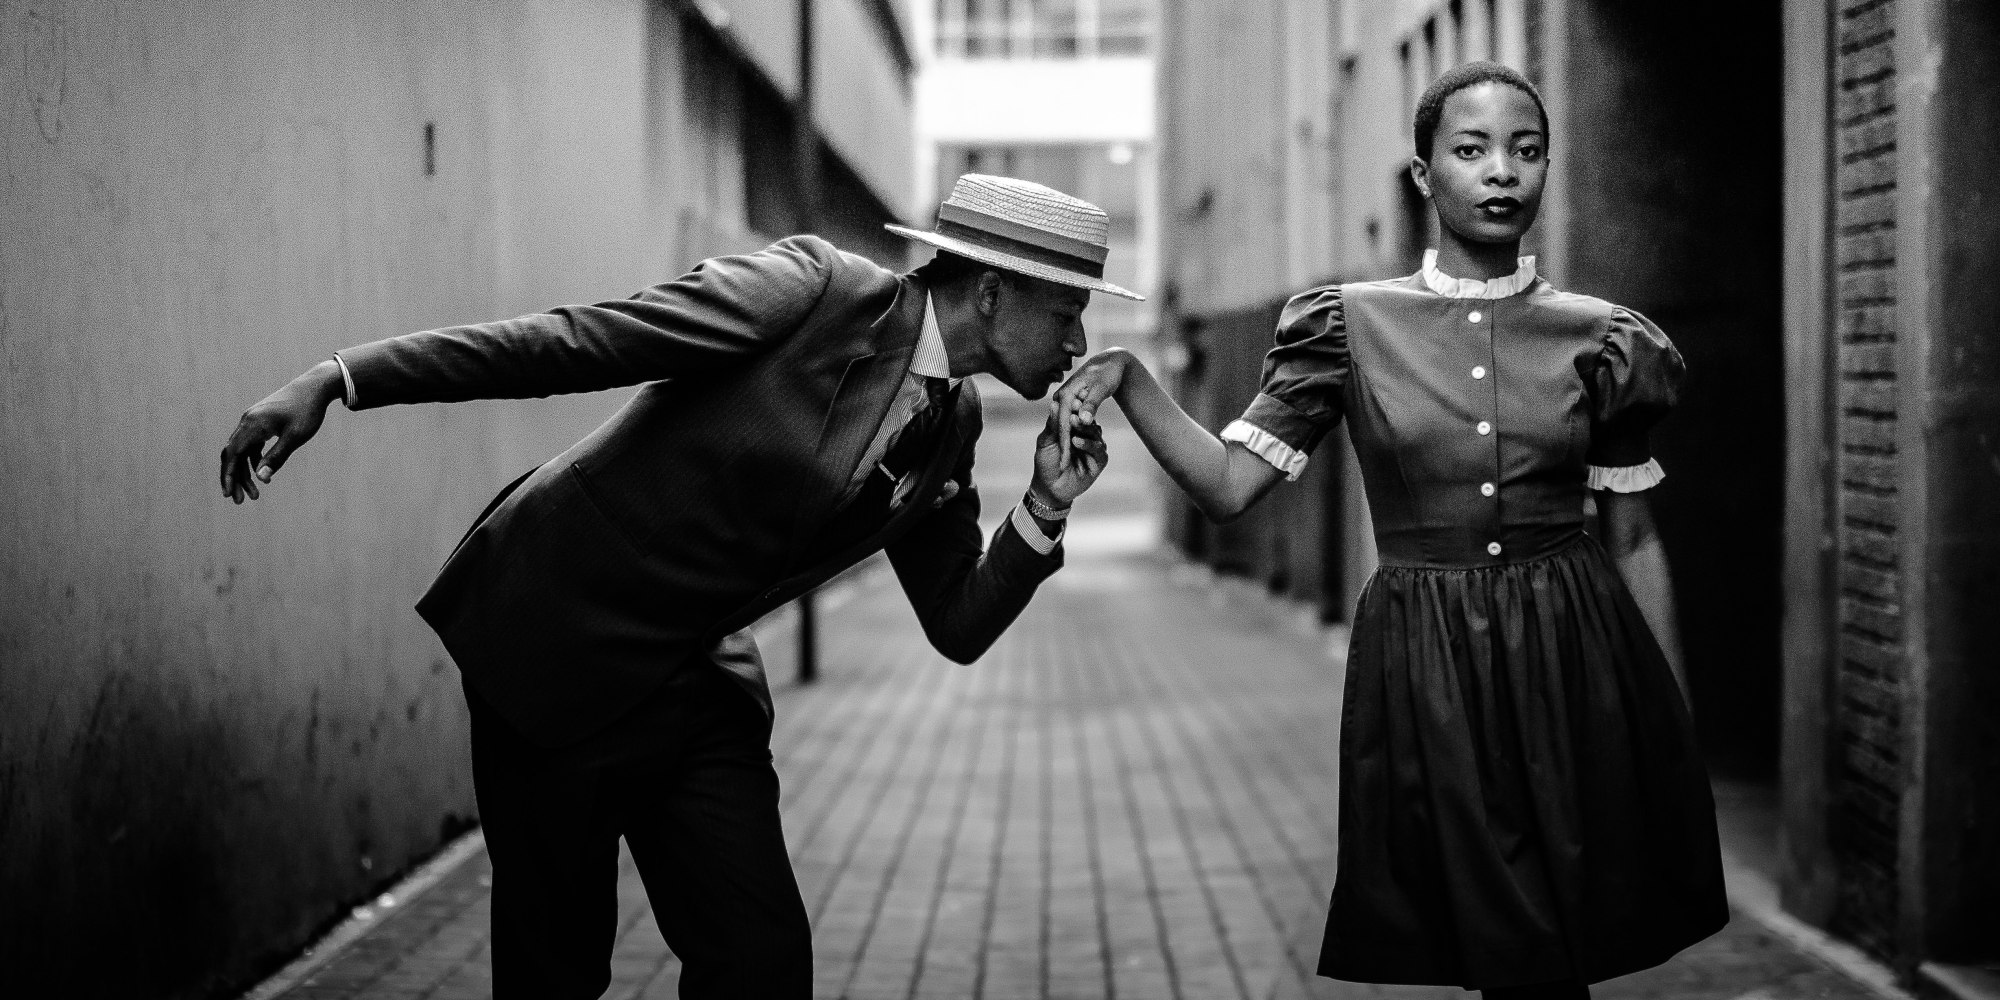 evocative photo project counters stereotypes of what it